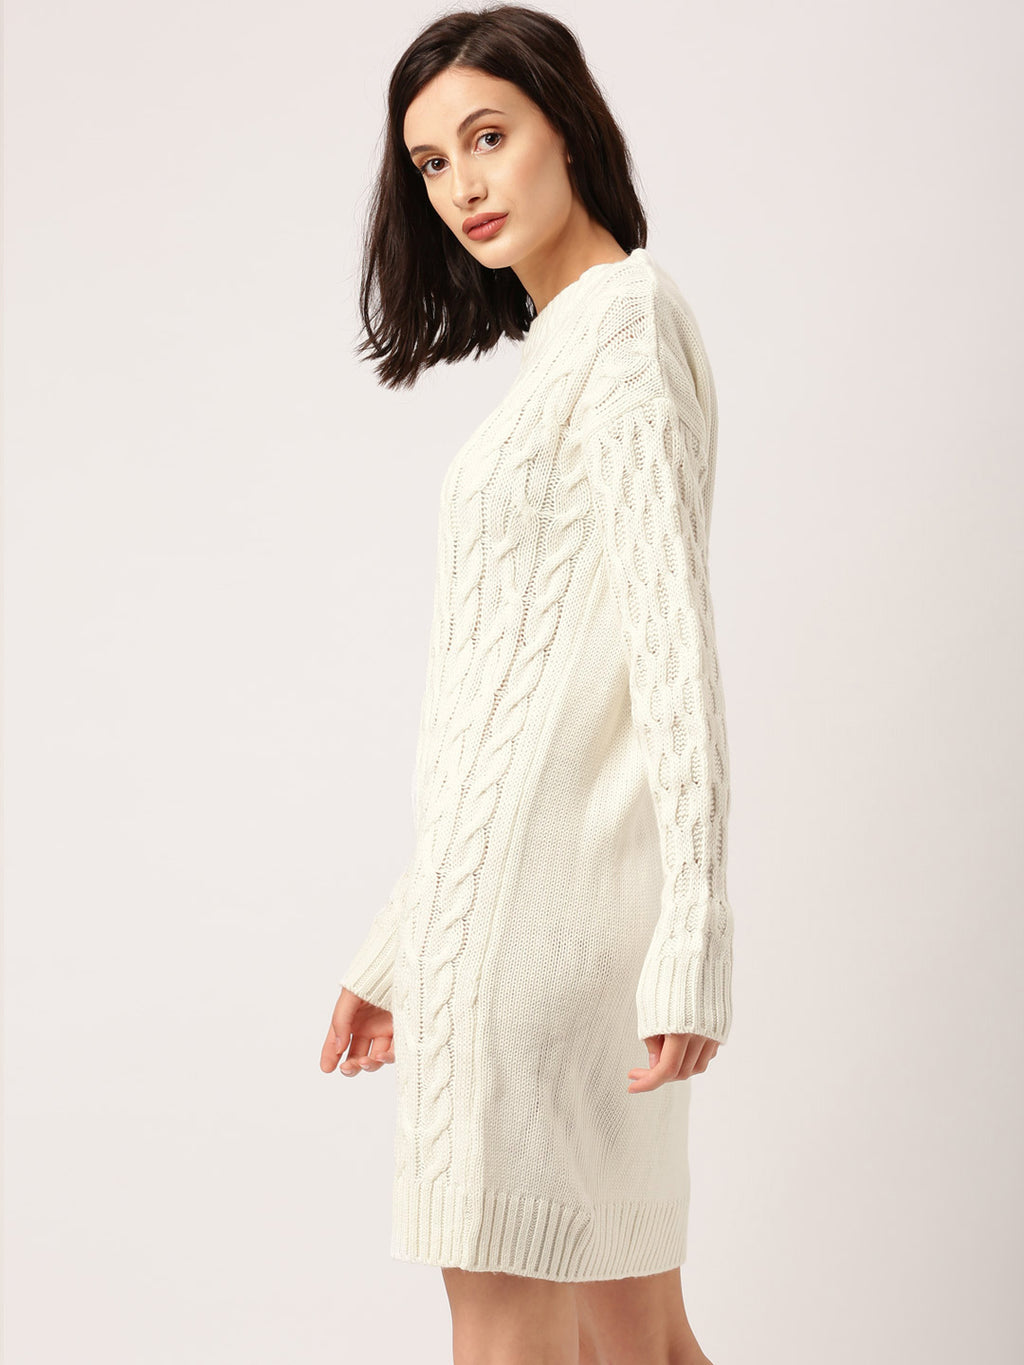 ALL ABOUT YOU - Women Off-White Self Design Longline Sweater Dress